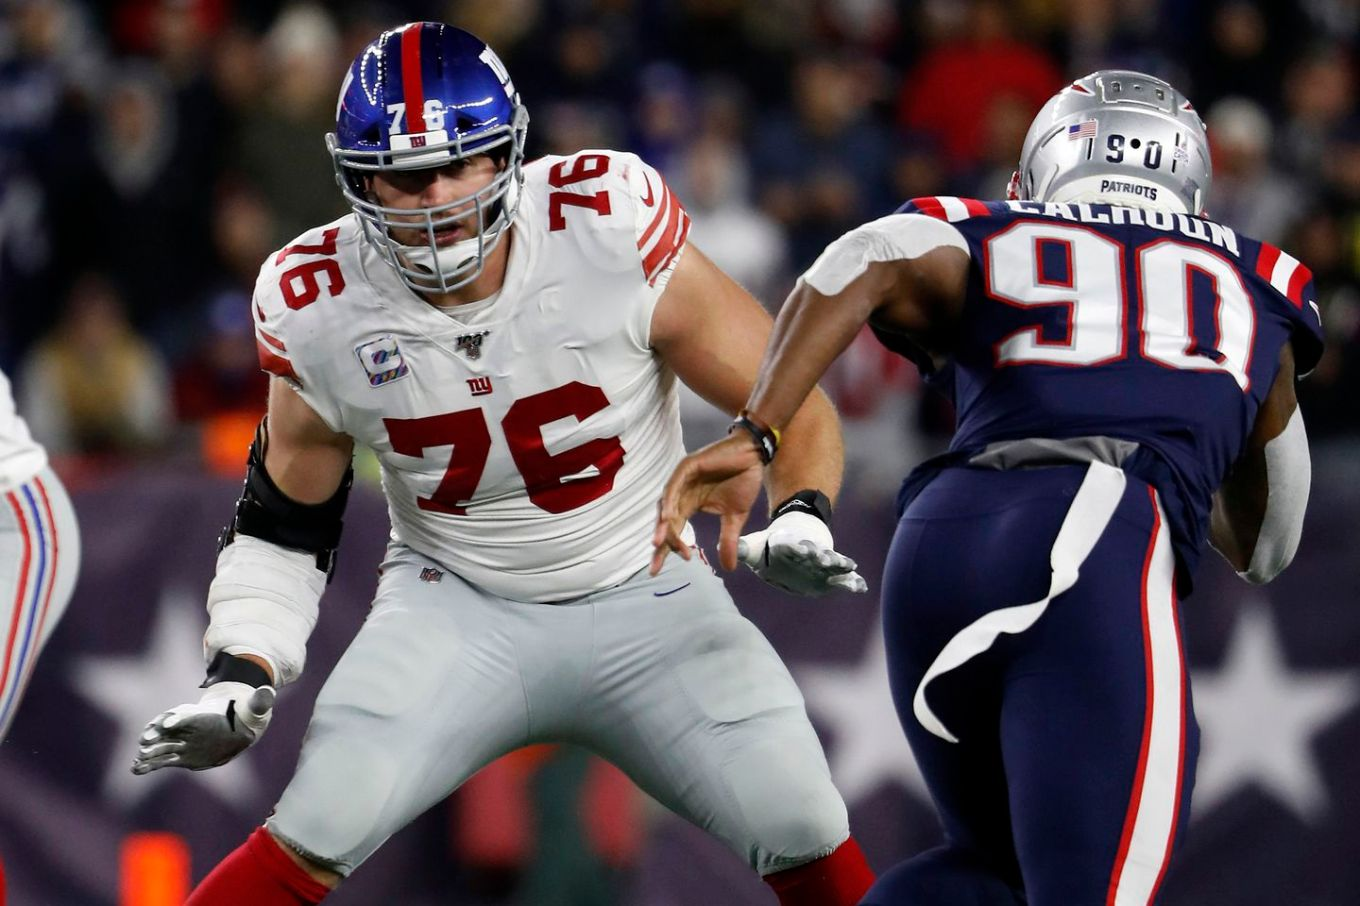 Former Patriot Nate Solder started every game at left tackle the past two seasons for the Giants, but is opting not to play in 2020 for health concerns during the pandemic.